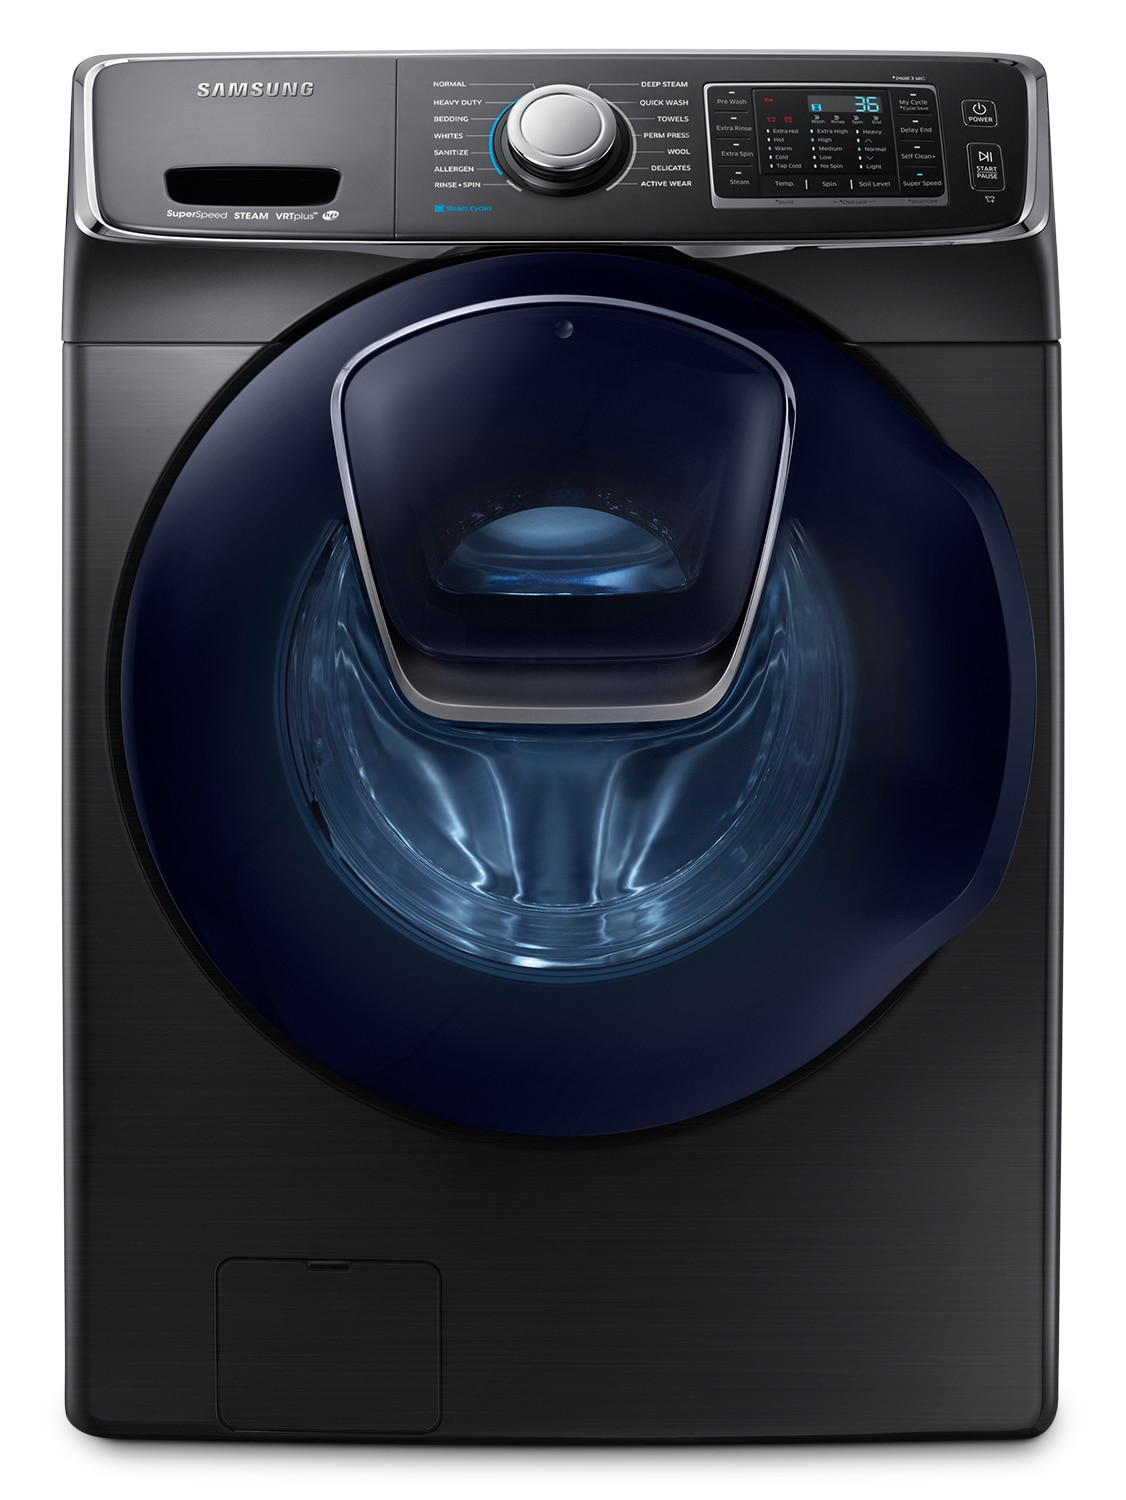 Samsung 5.2 Cu. Ft. Front-Load Washer – Black Stainless Steel WF45K6500AV/A2